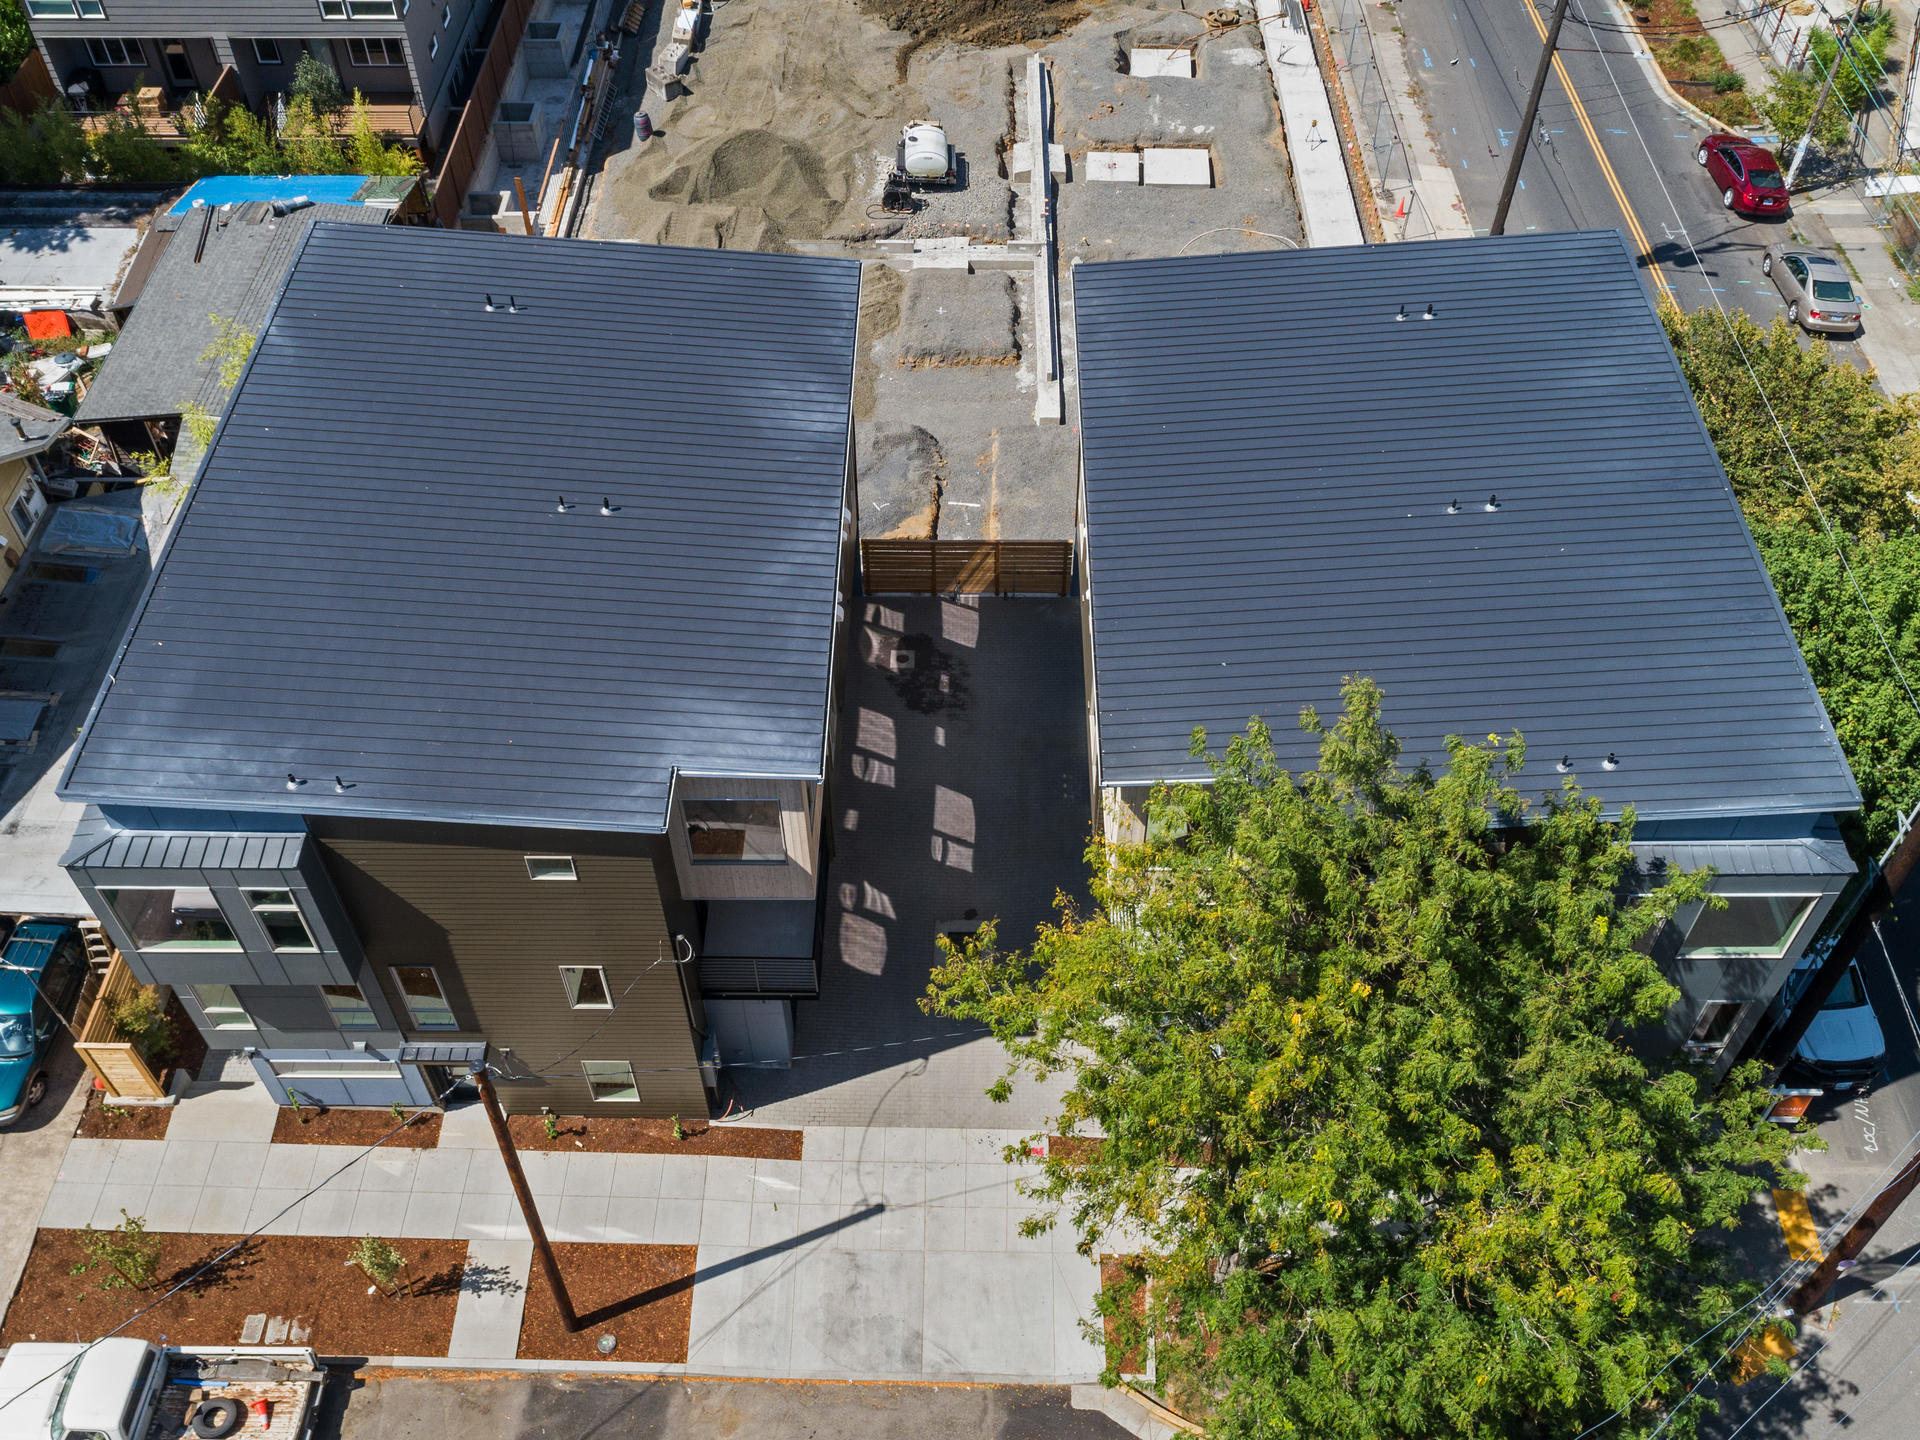 2911 SE Division St Portland-044-003-Aerial View-MLS_Size.jpg